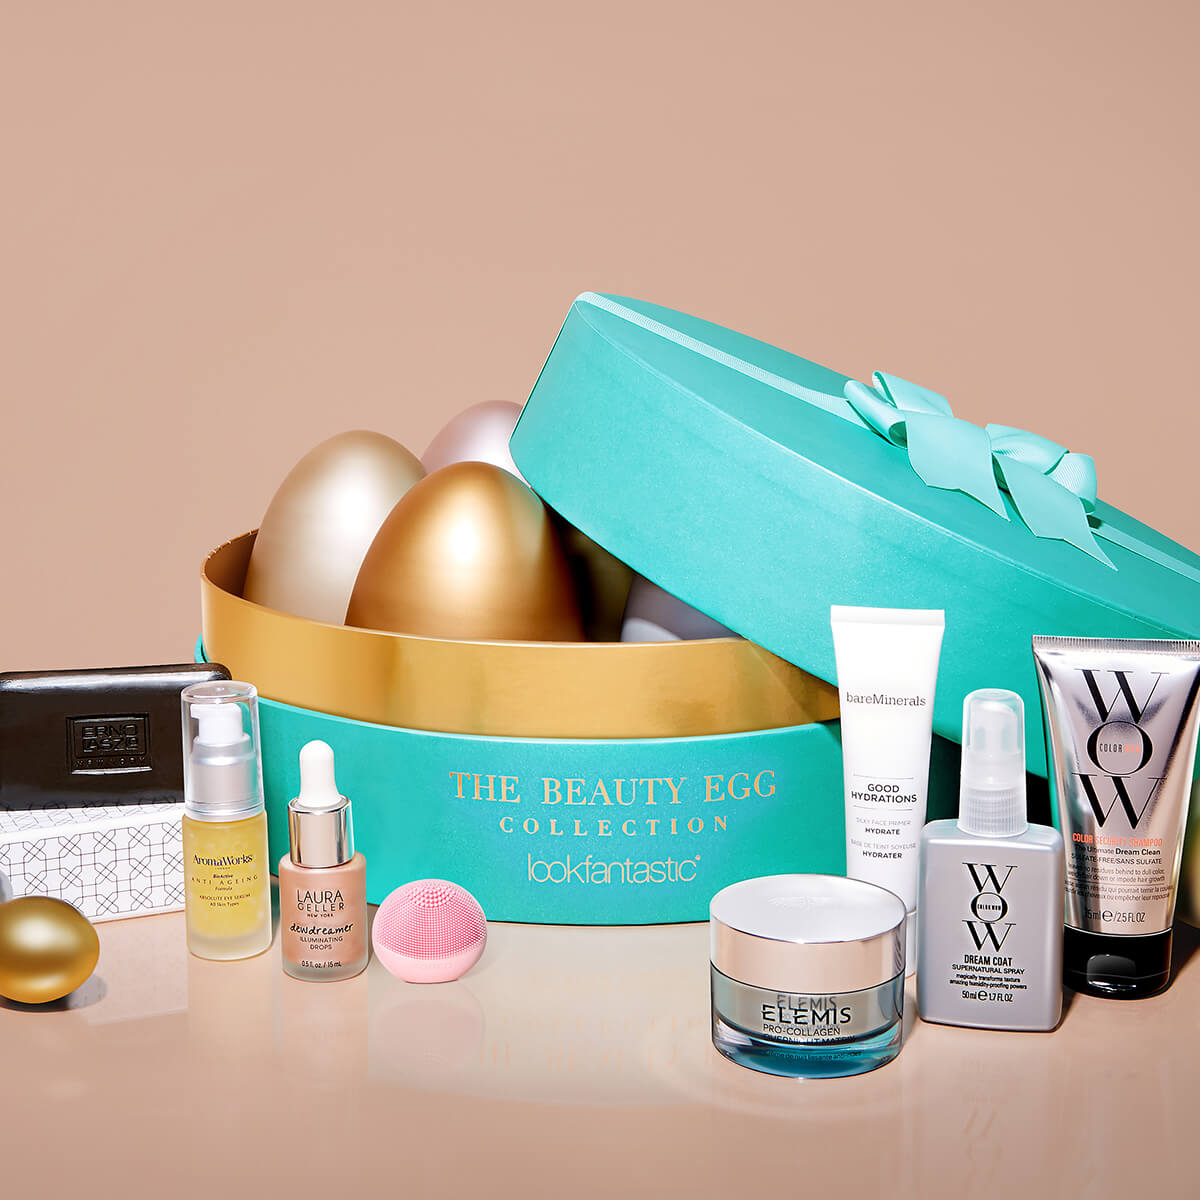 Beauty Egg collection 2019 look fantastic